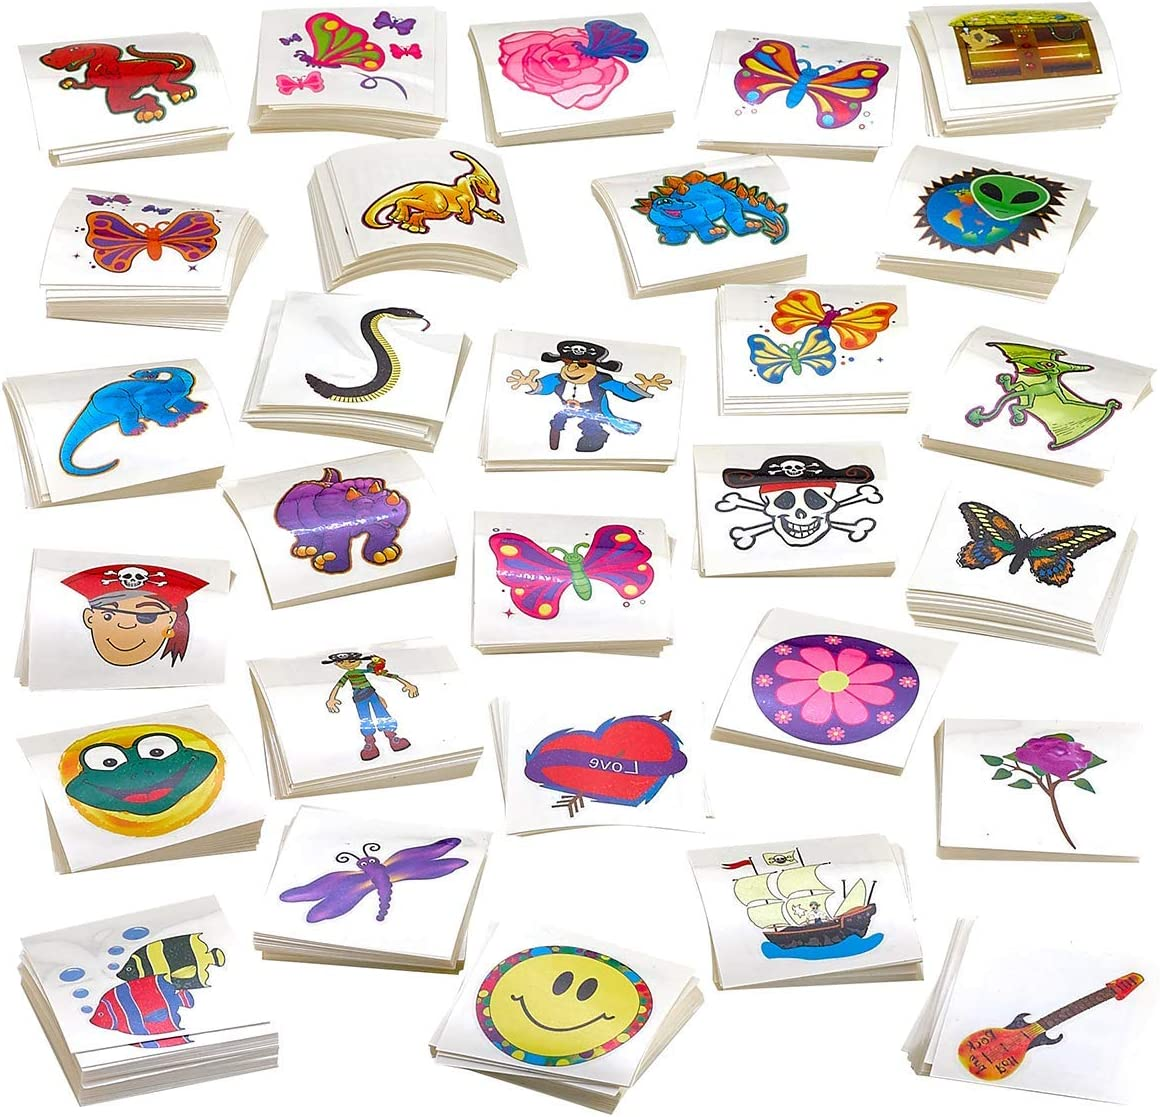 Kicko Tattoo Assortment - 720 PC Colorful Tattoos - Temporary Tattoos Assortment - Includes Dinosaur, Pirates, Animals, Flowers and etc. - Kids Party Favors